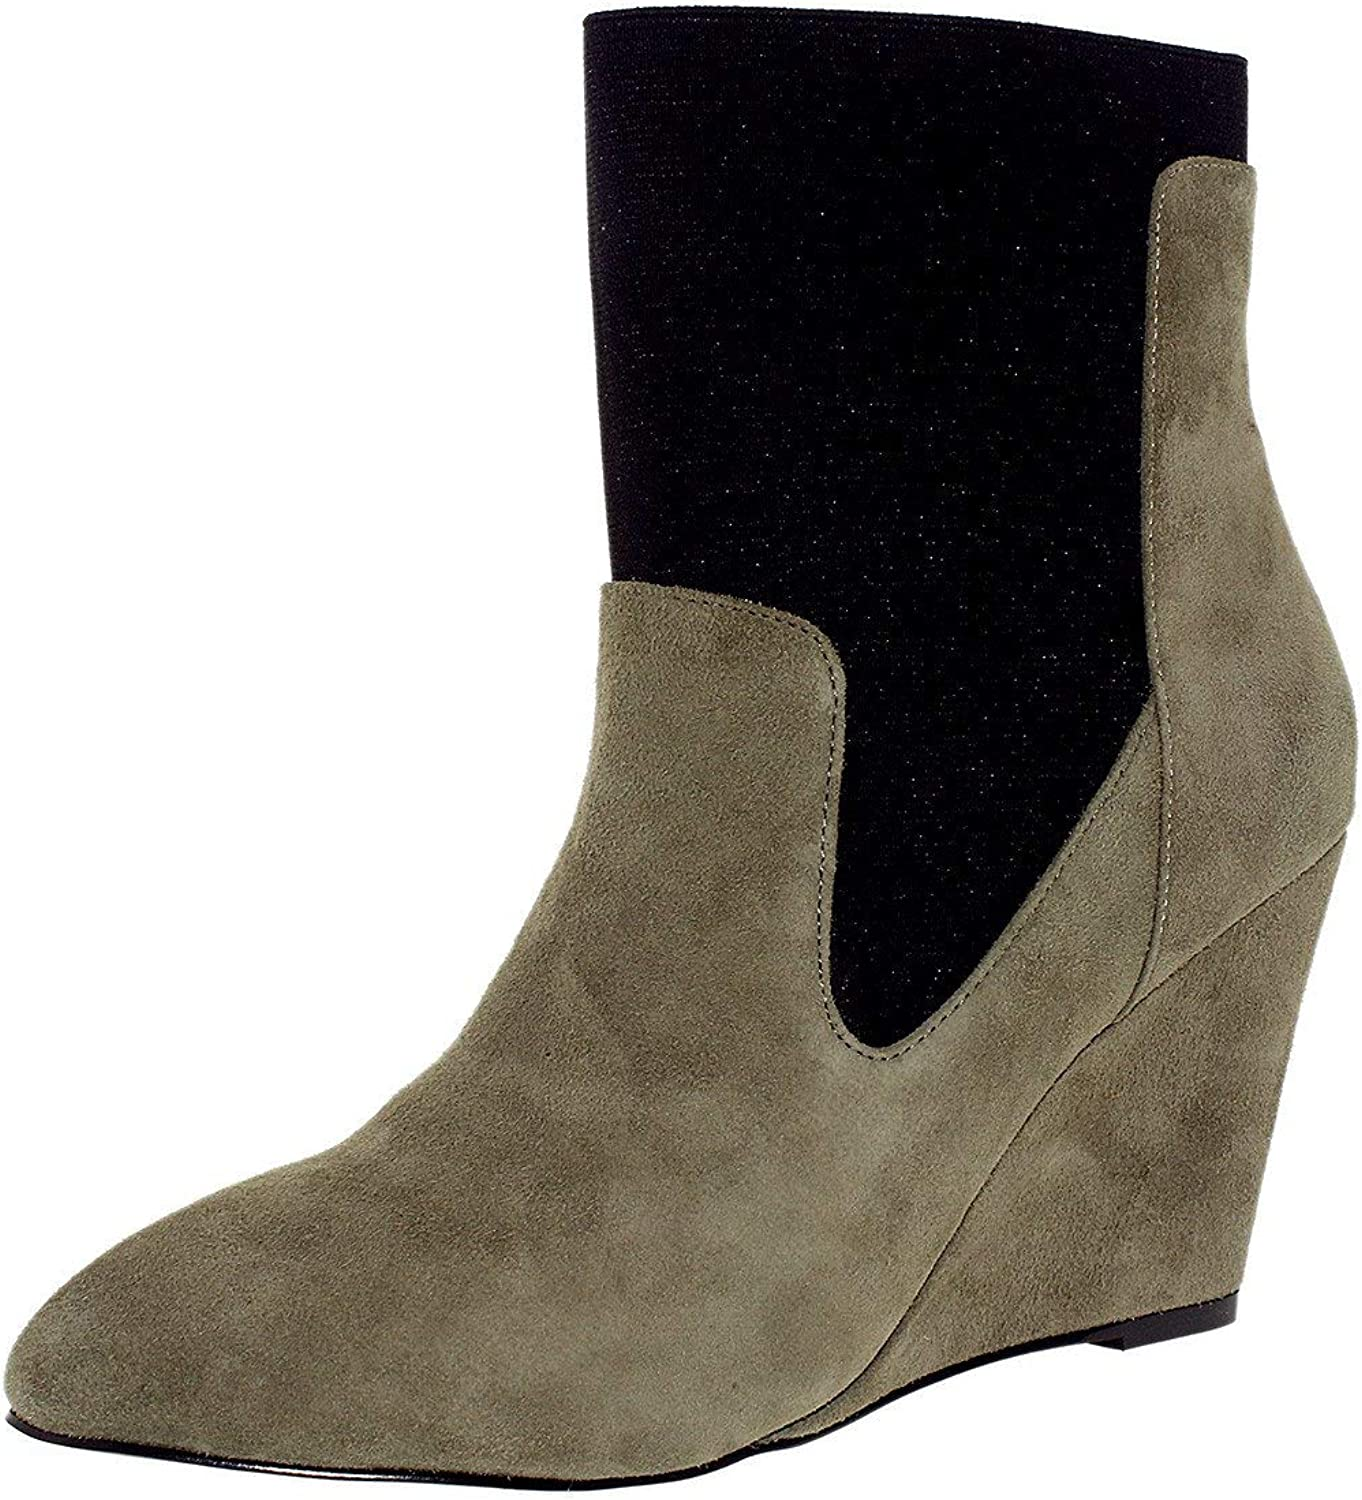 Charles by Charles David Womens Erie Ankle Bootie